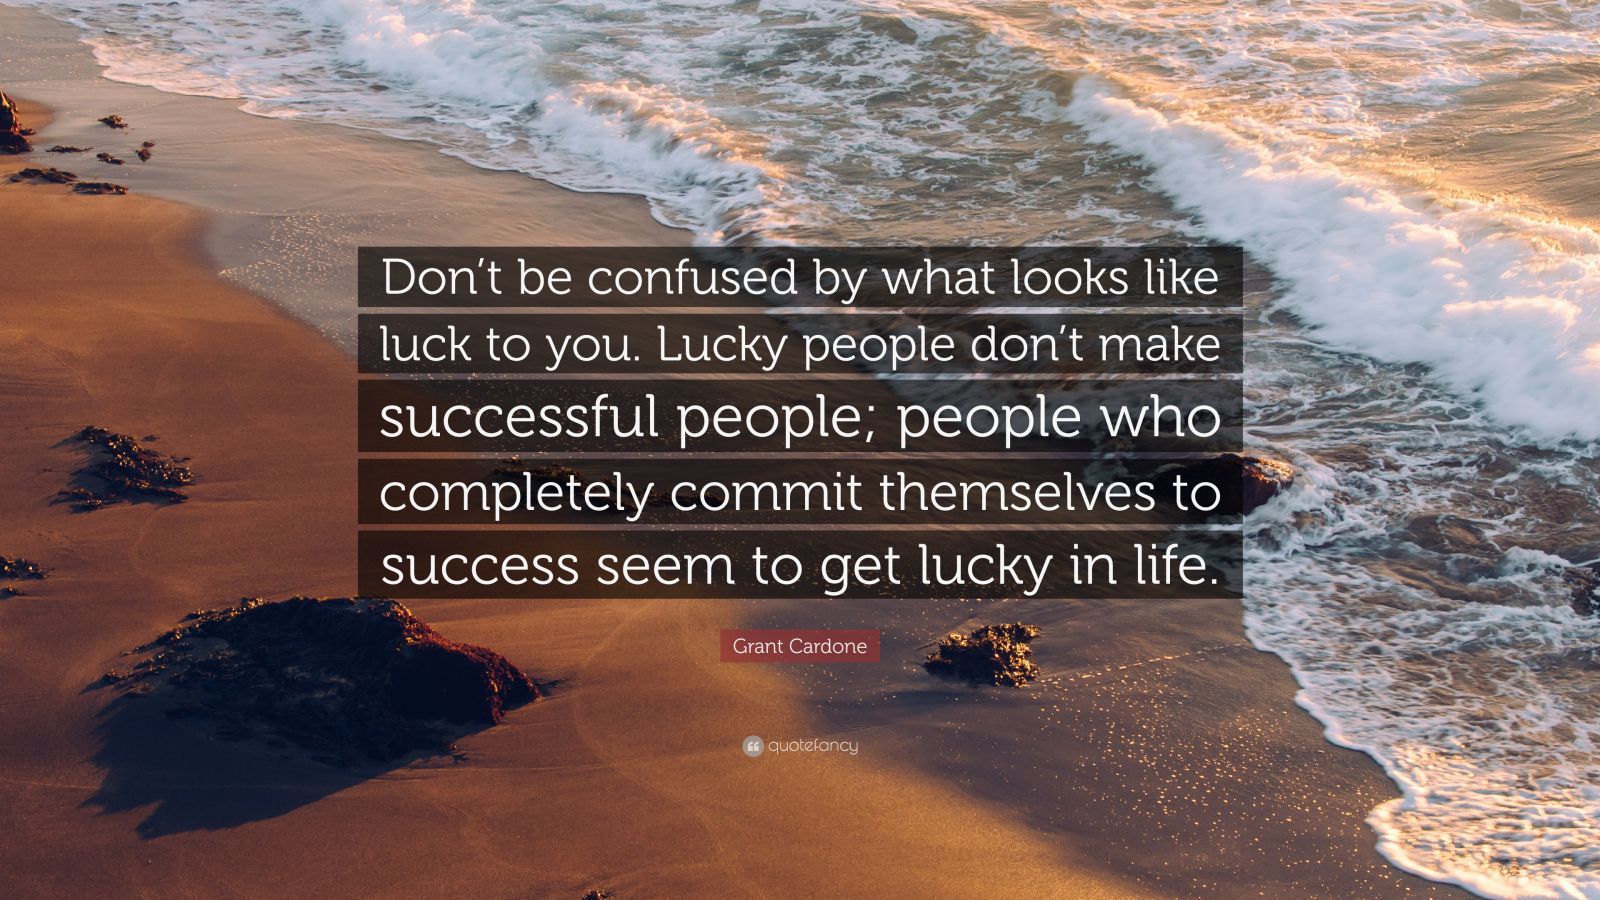 """Grant Cardone Quote: """"Don't be confused by what looks like luck to you. Lucky people don't make successful people; people who completely commit themselves to success seem to get lucky in life."""""""